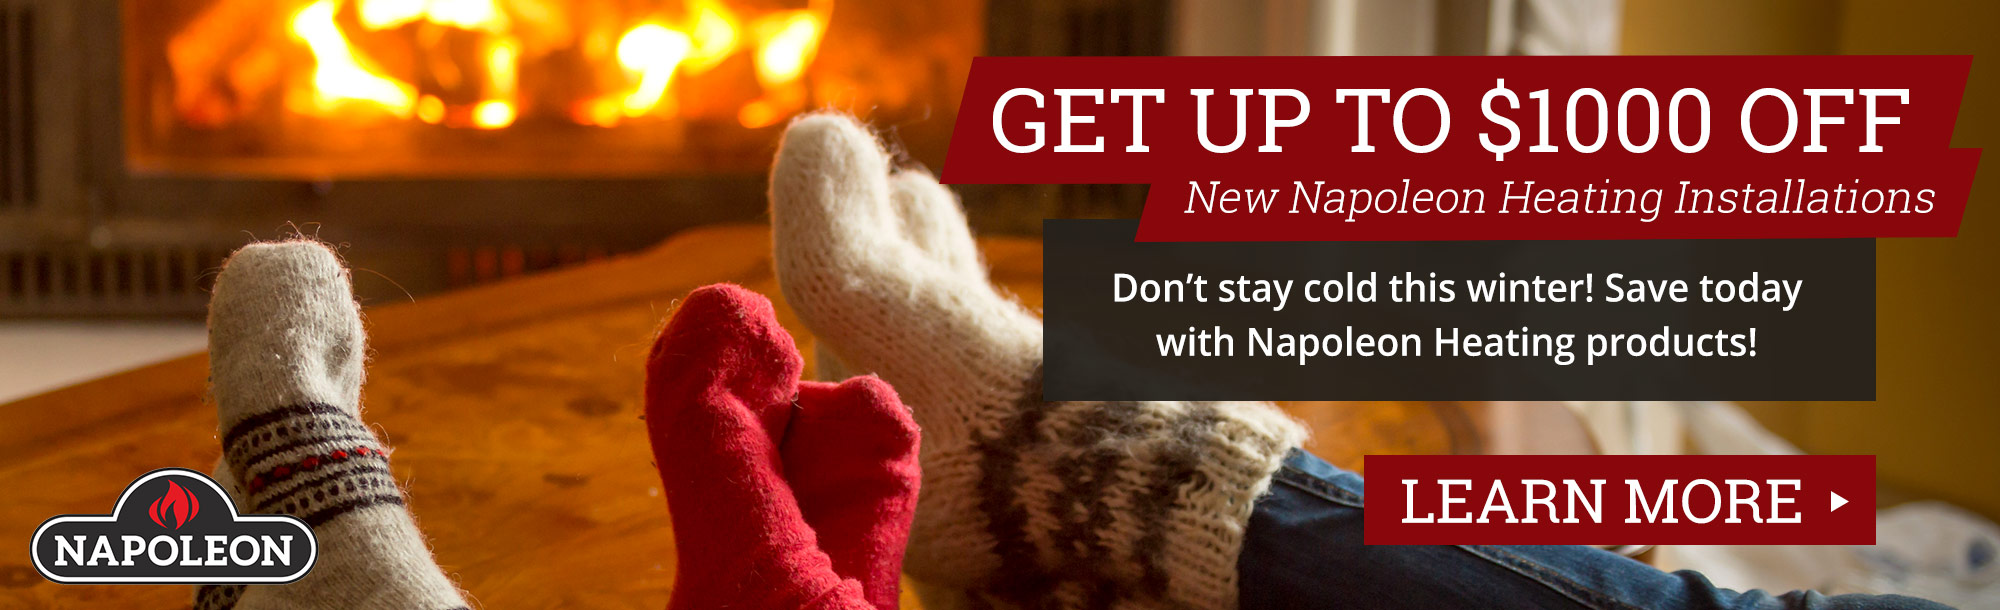 Napoleon Heating Installations